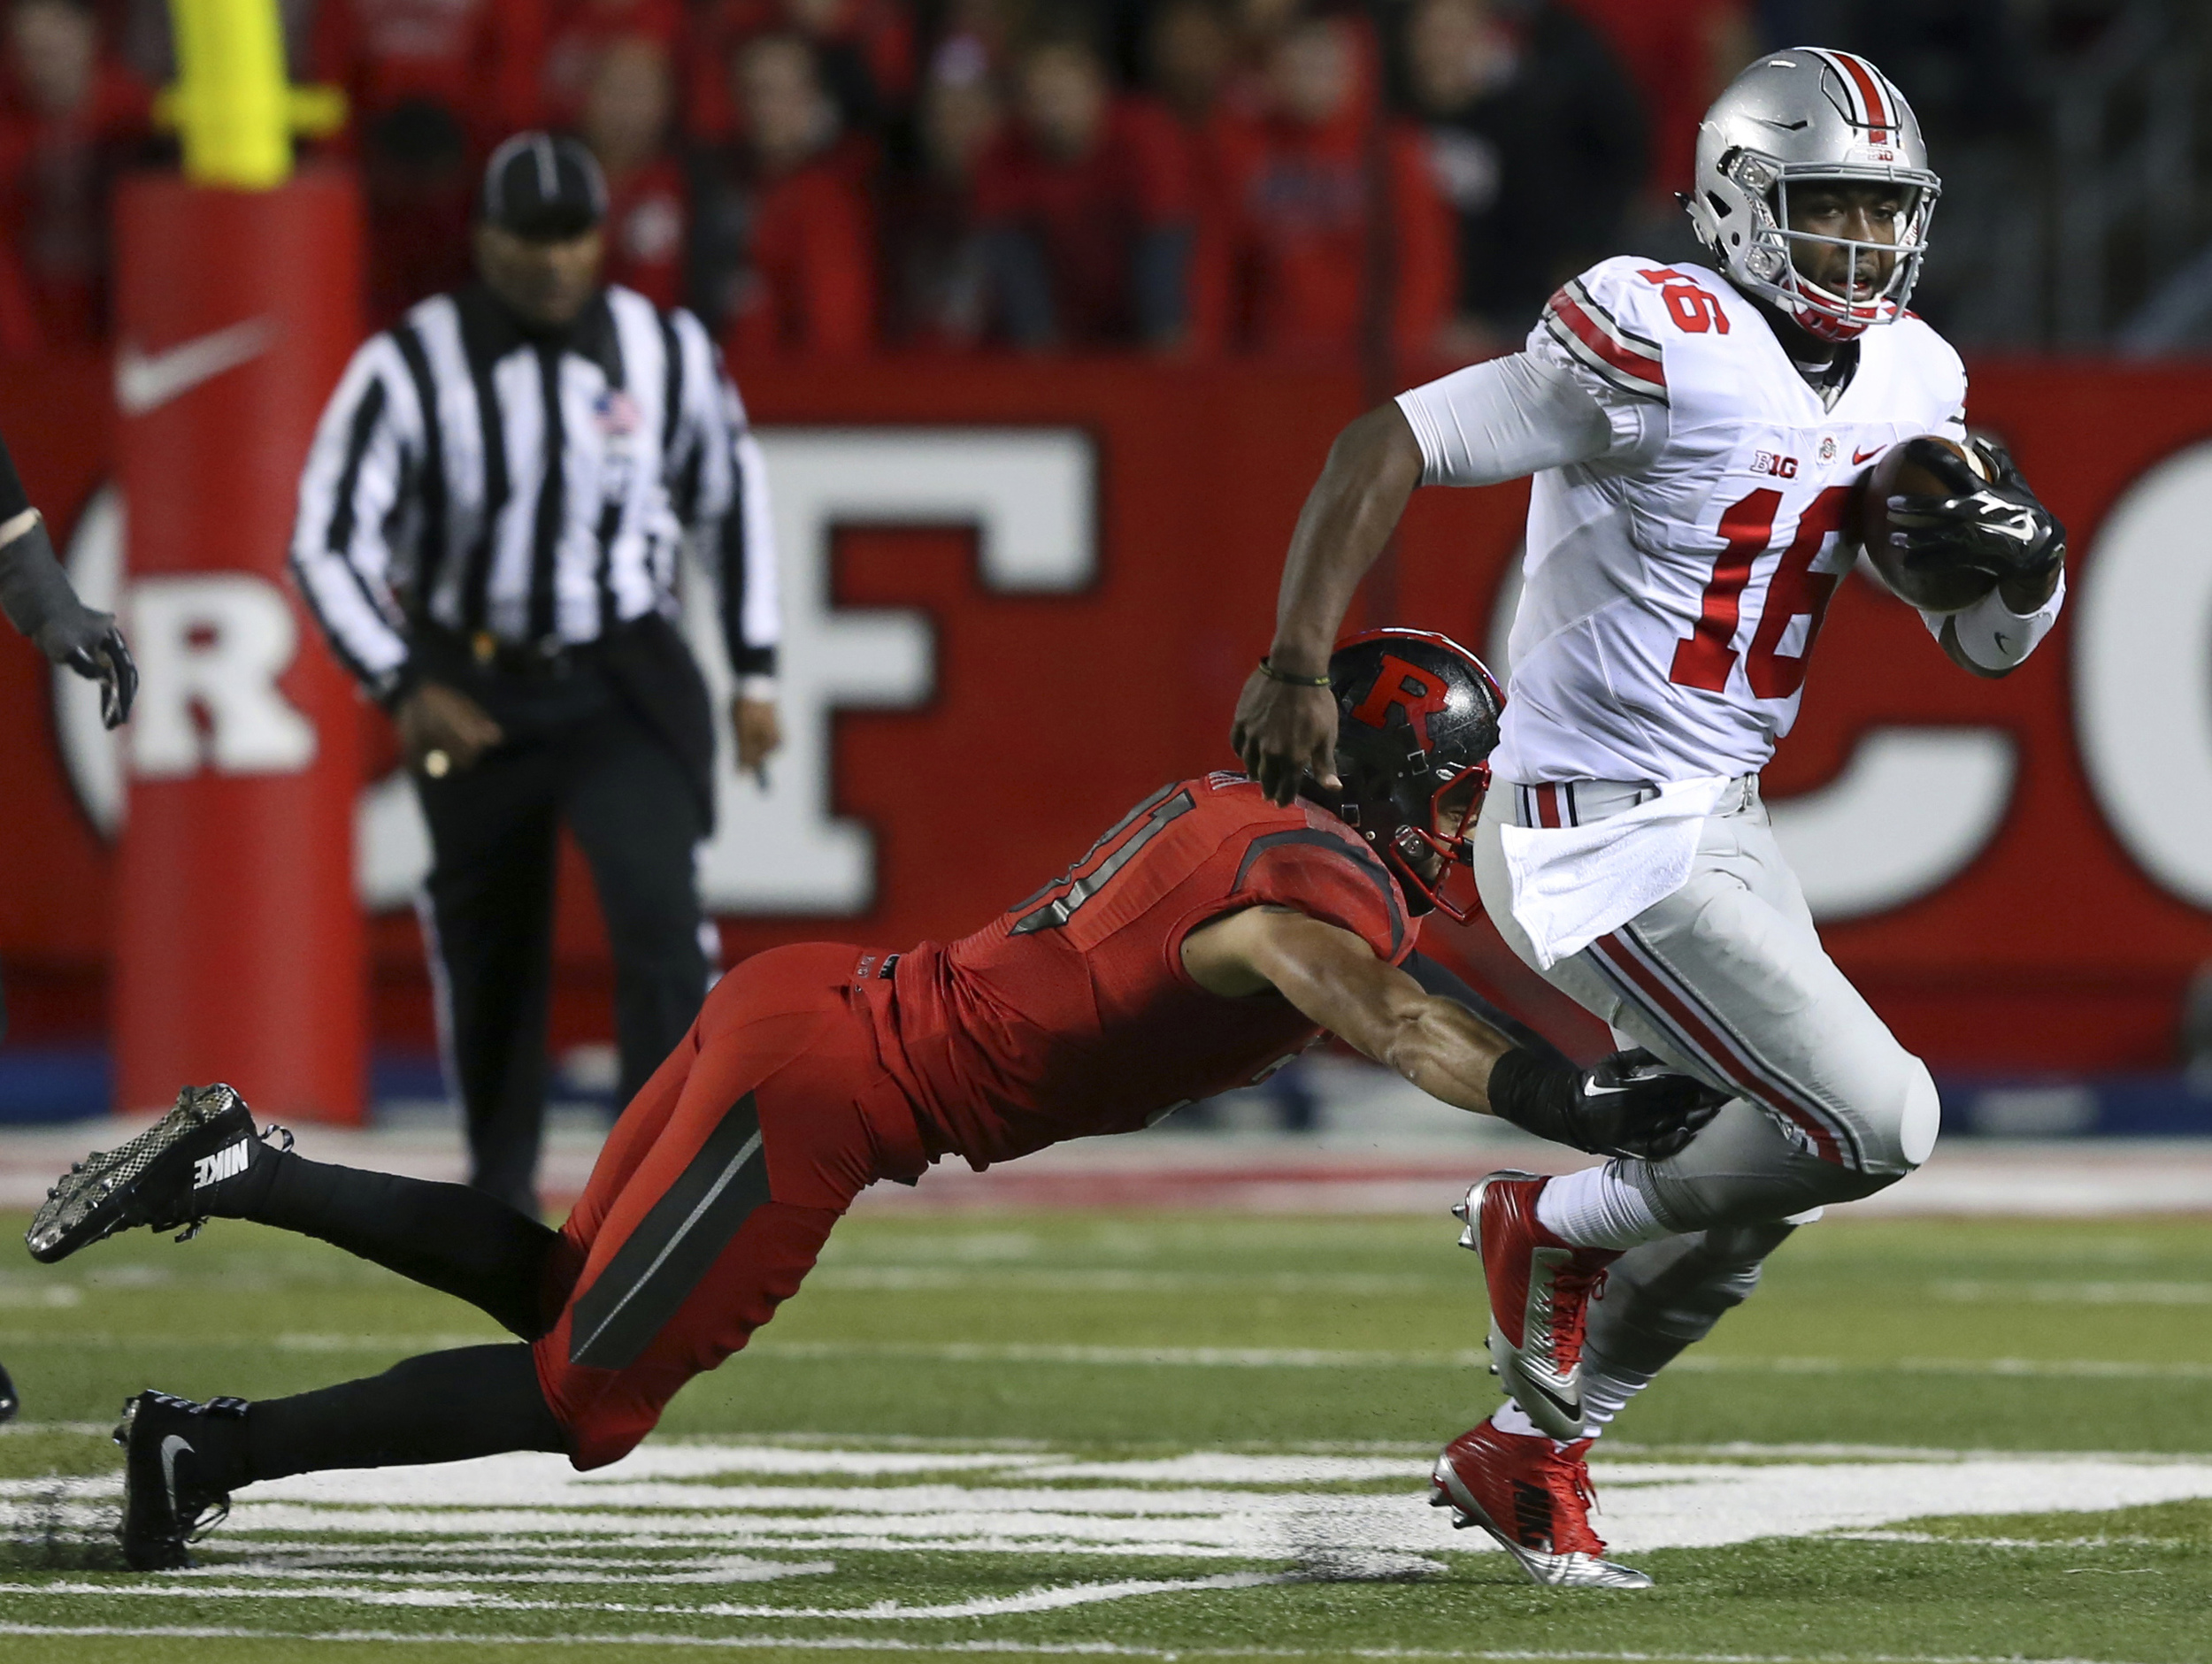 Ohio State quarterback J.T.Barrett (16) breaks a tackle by Rutgers defensive back Anthony Cioffi (31) during the first half of an NCAA college football game Saturday, Oct. 24, 2015, in Piscataway, N.J. (AP).